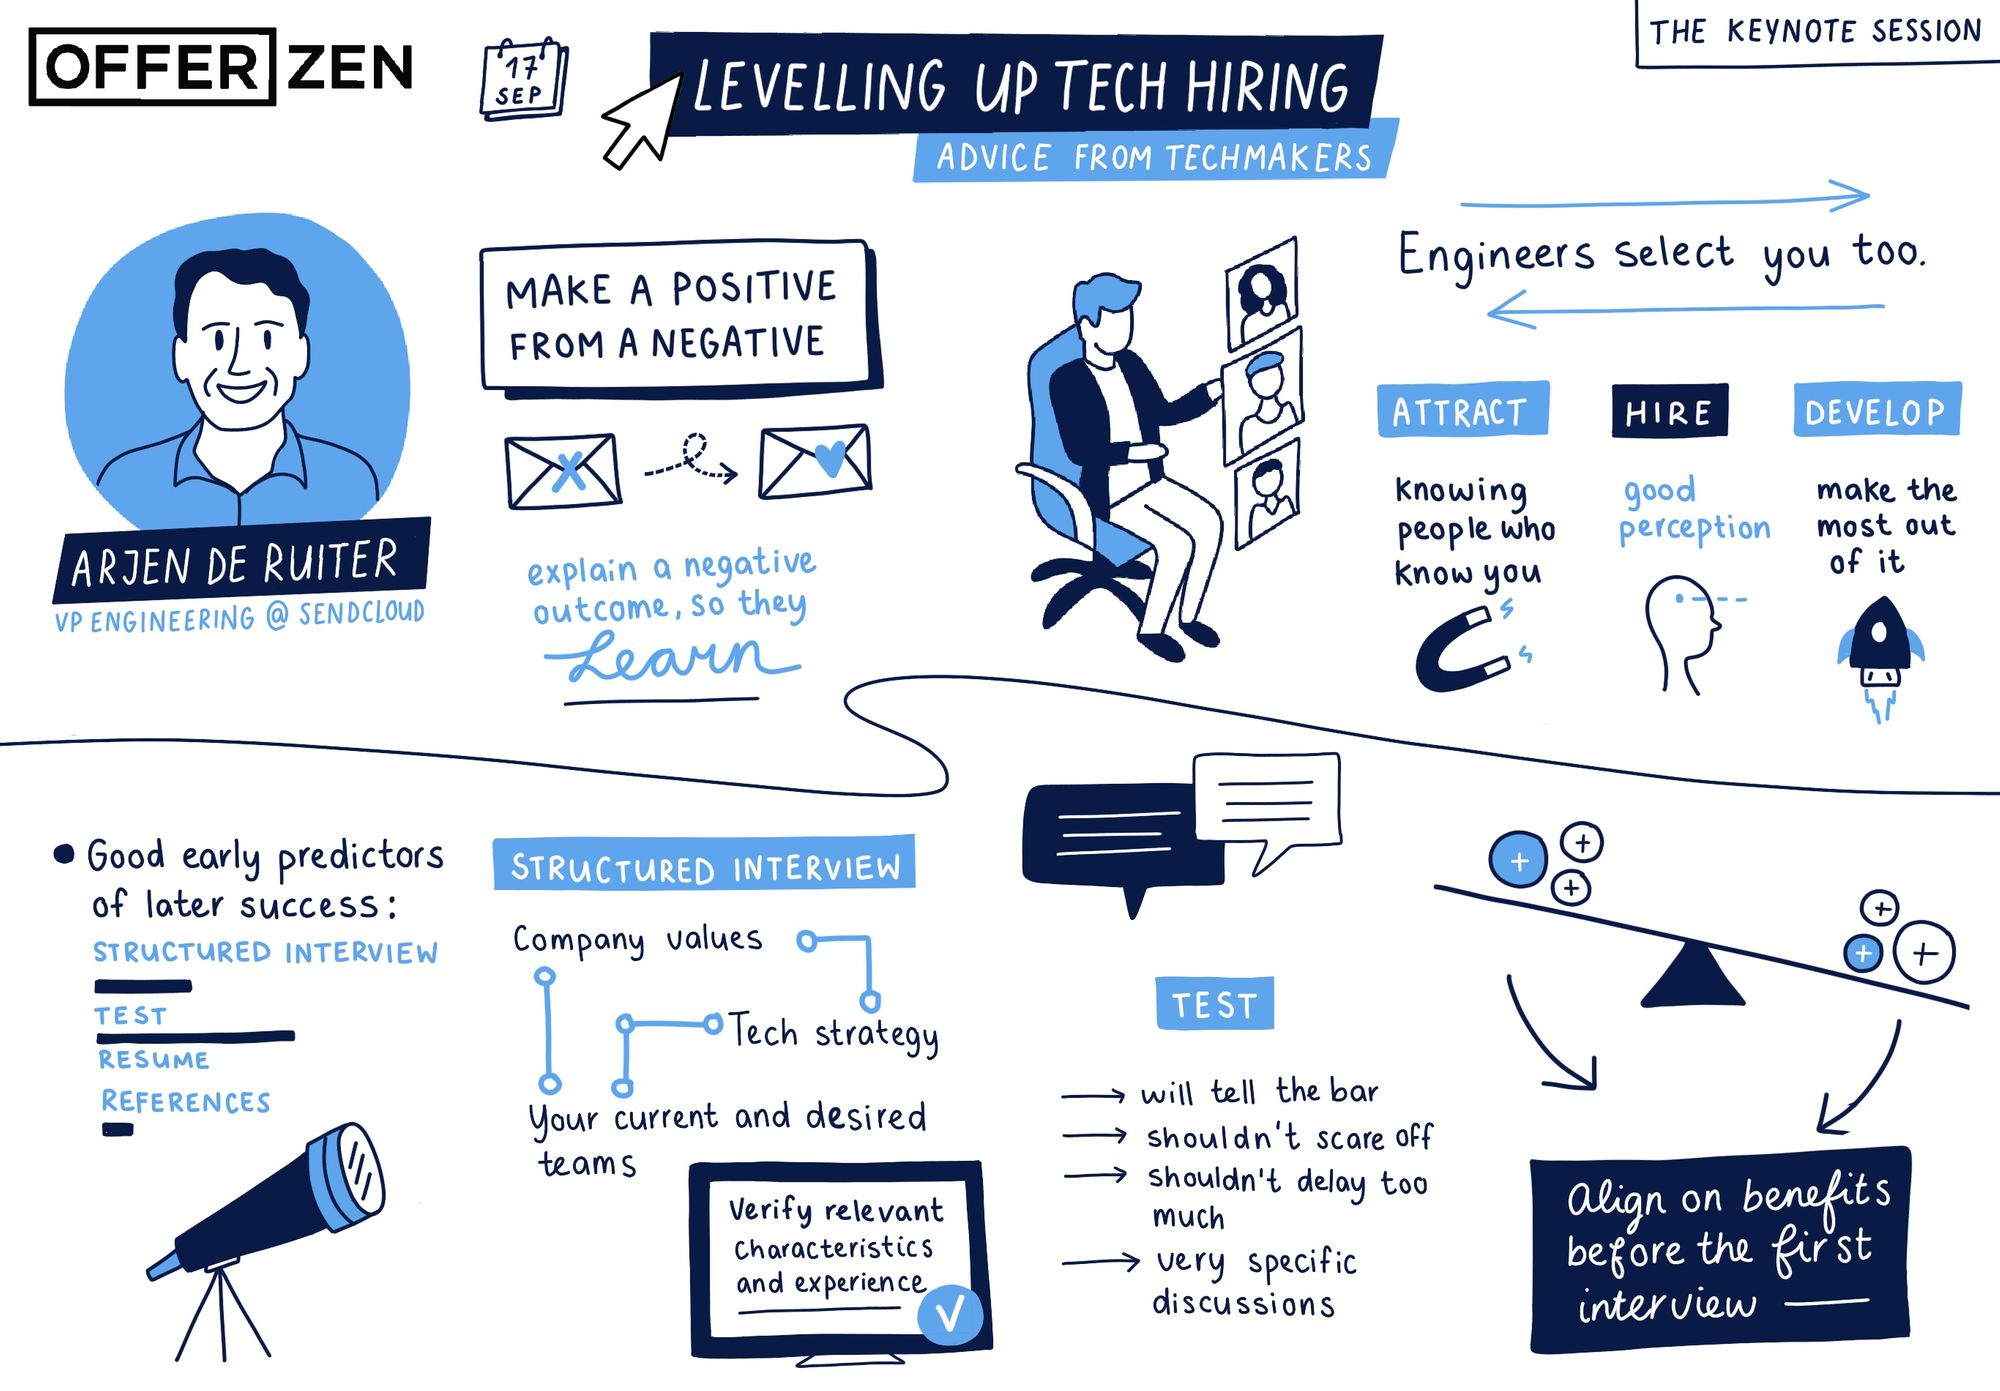 Levelling_Up_Tech_Hiring_1